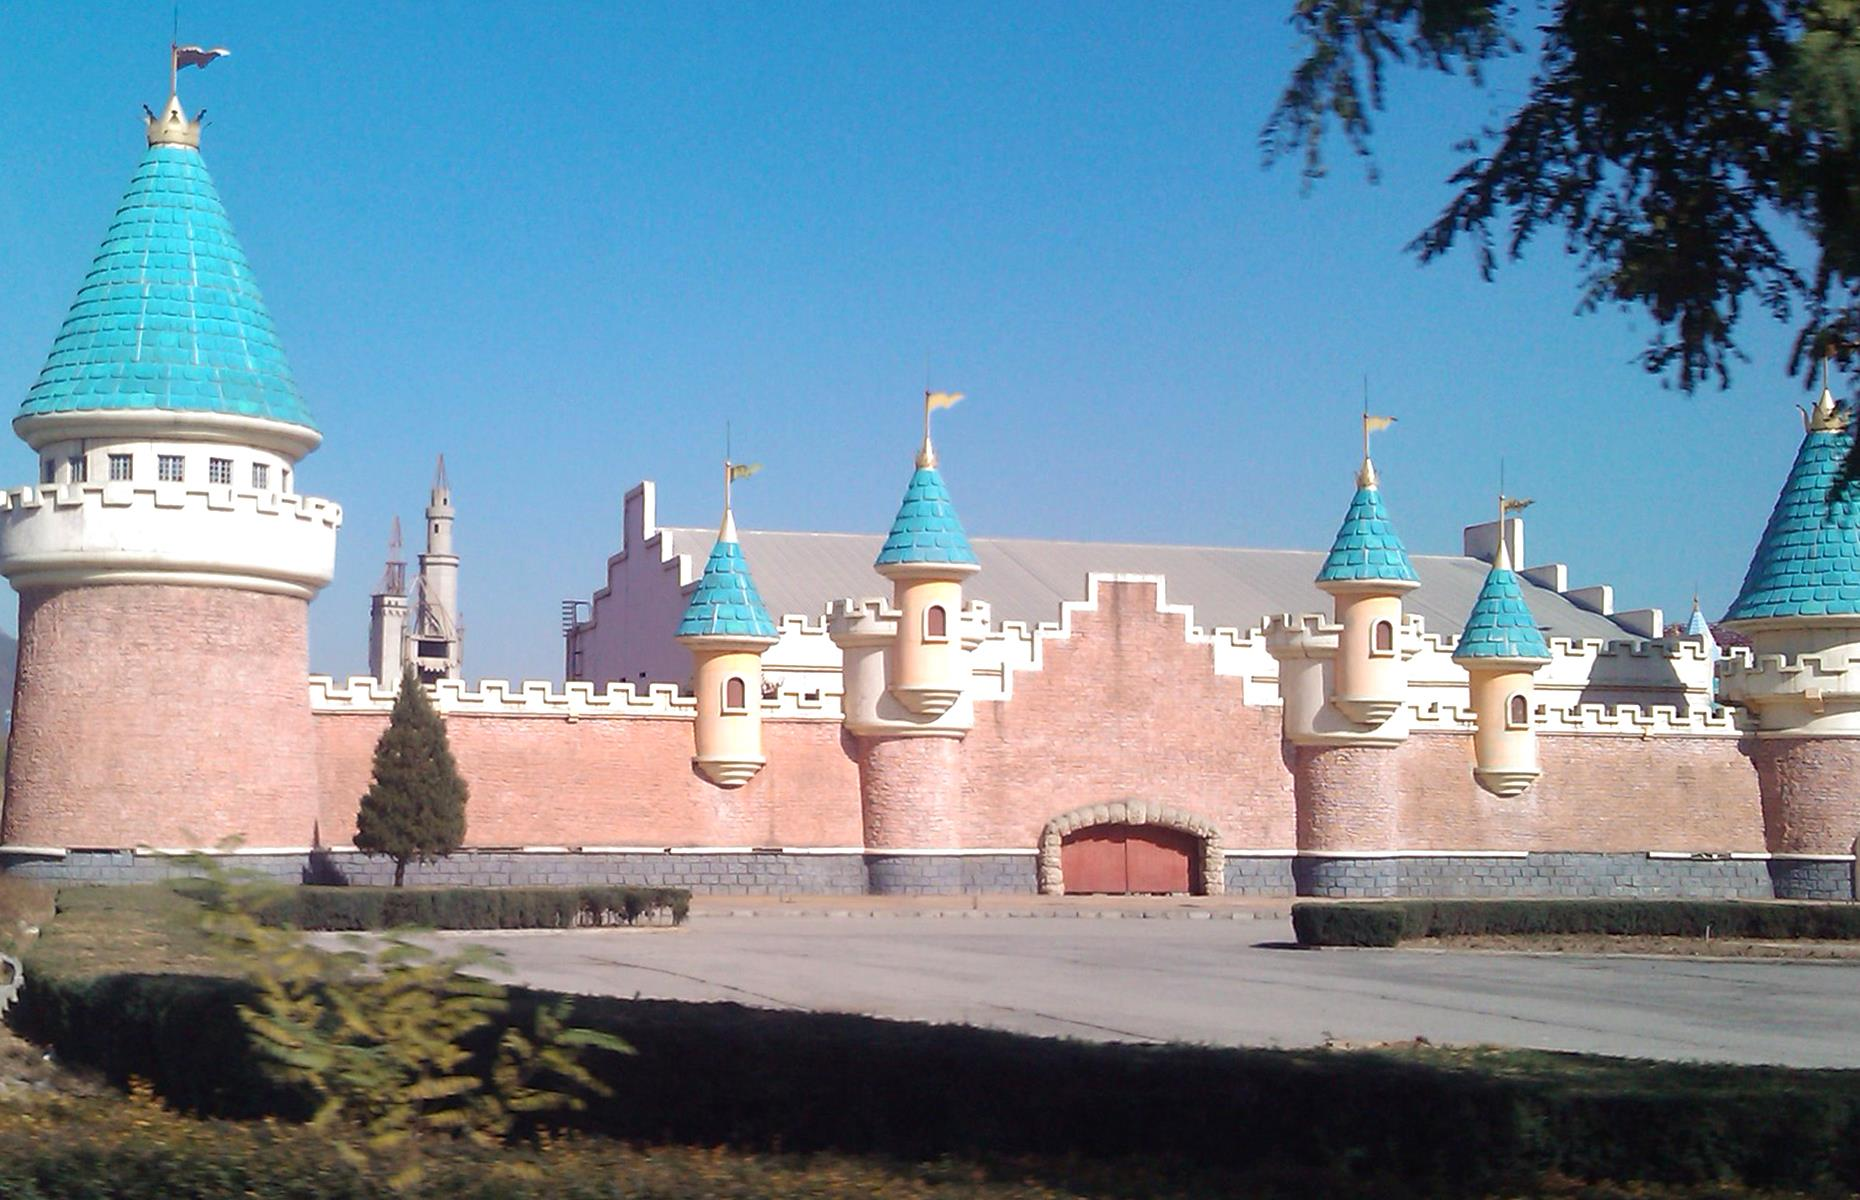 Slide 7 of 28: A stone's throw from Beijing, you'll find the remnants of the Wonderland Amusement Park. It was once tipped to be China's answer to Disneyland but due to financial issues, construction on the ambitious theme park was halted in the late 1990s. It was never completed or opened, and all that remains is a fairy-tale castle, now the domain of urban explorers. Check out more abandoned theme parks around the world here.